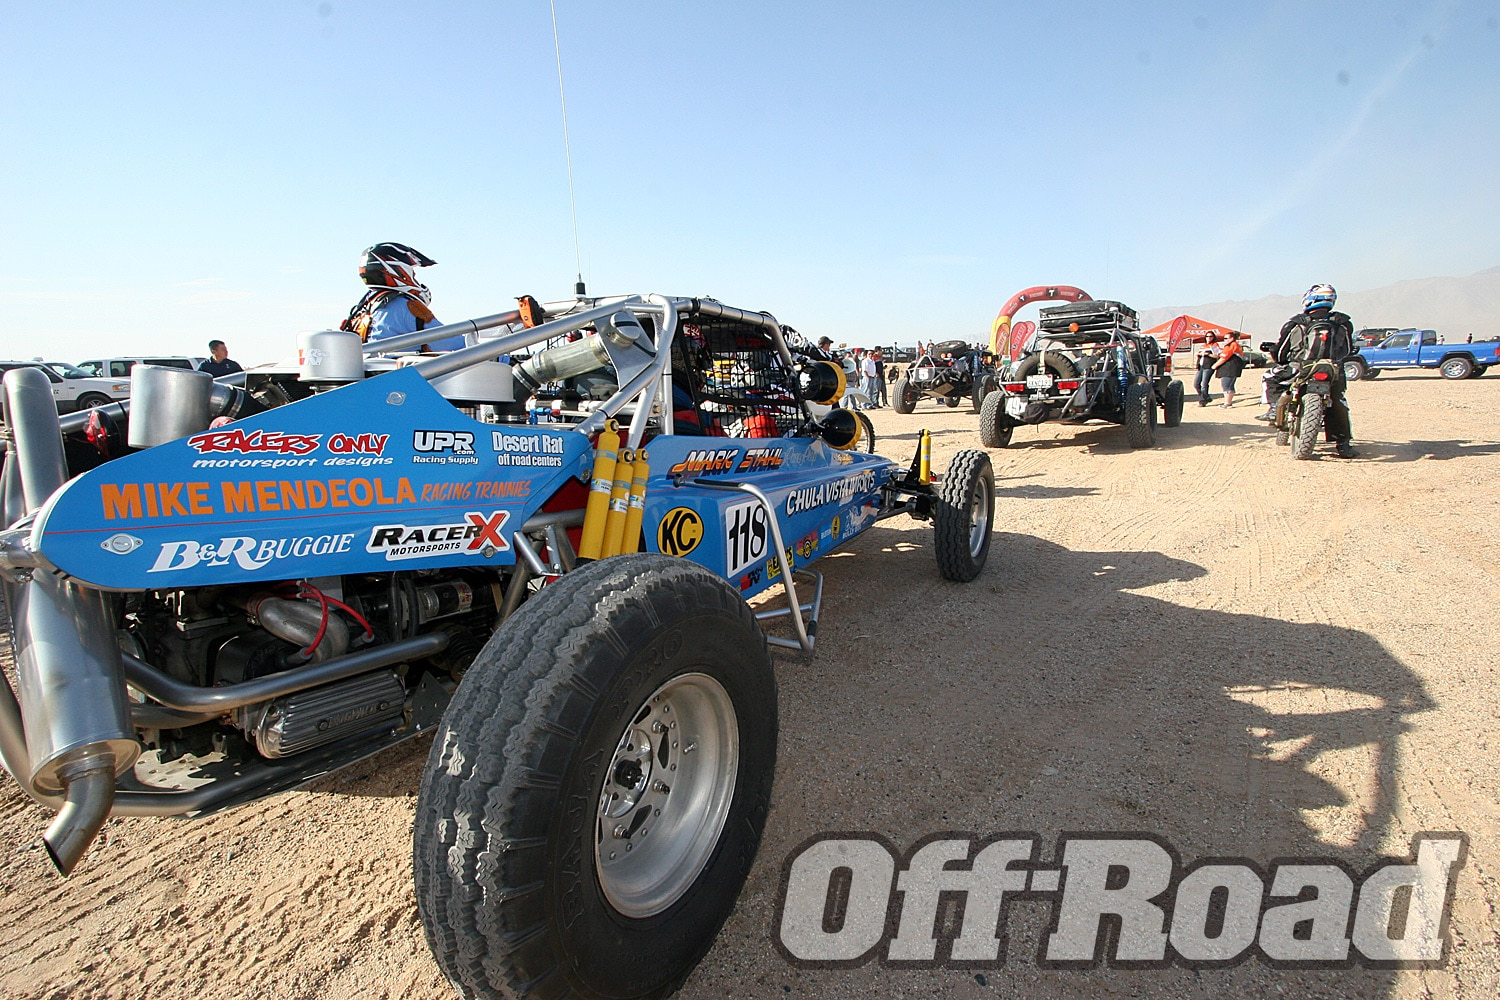 092211or 18+chenowth 1000 class 3+2011 norra mexican 1000